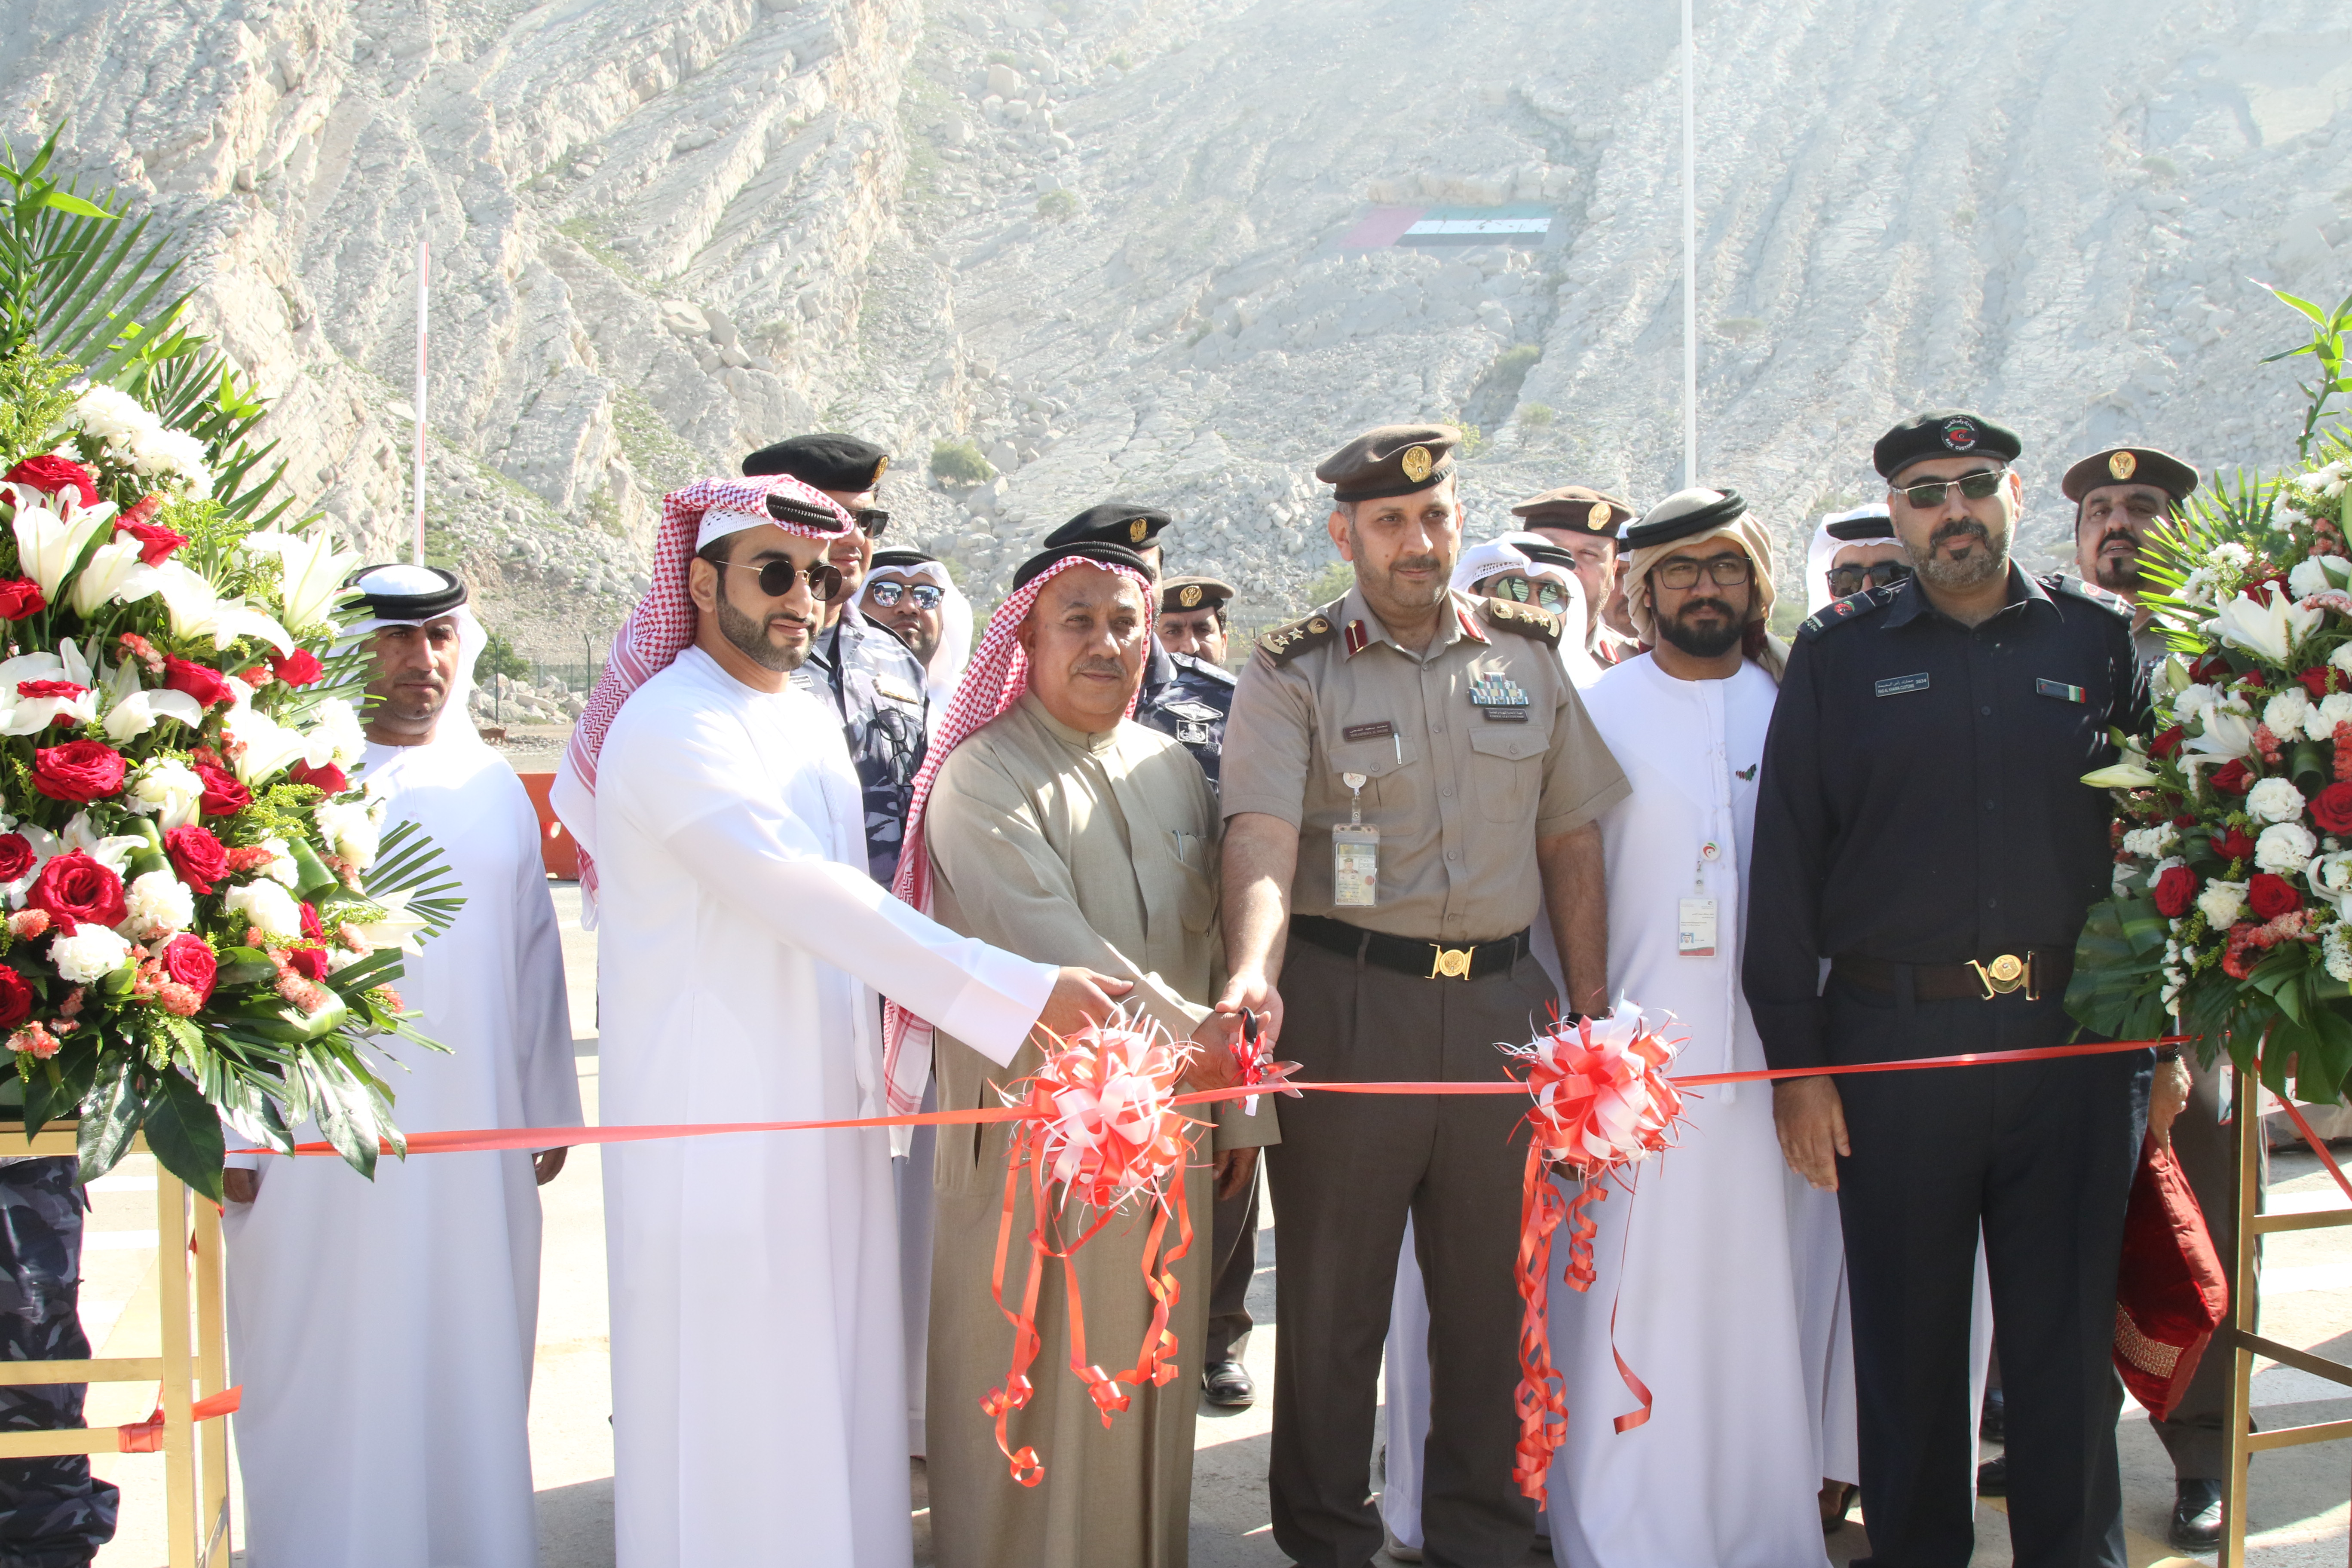 RAK Customs inaugurates the new light and heavy vehicles scanner at Al Dara Customs in conjunction with the International Customs Day